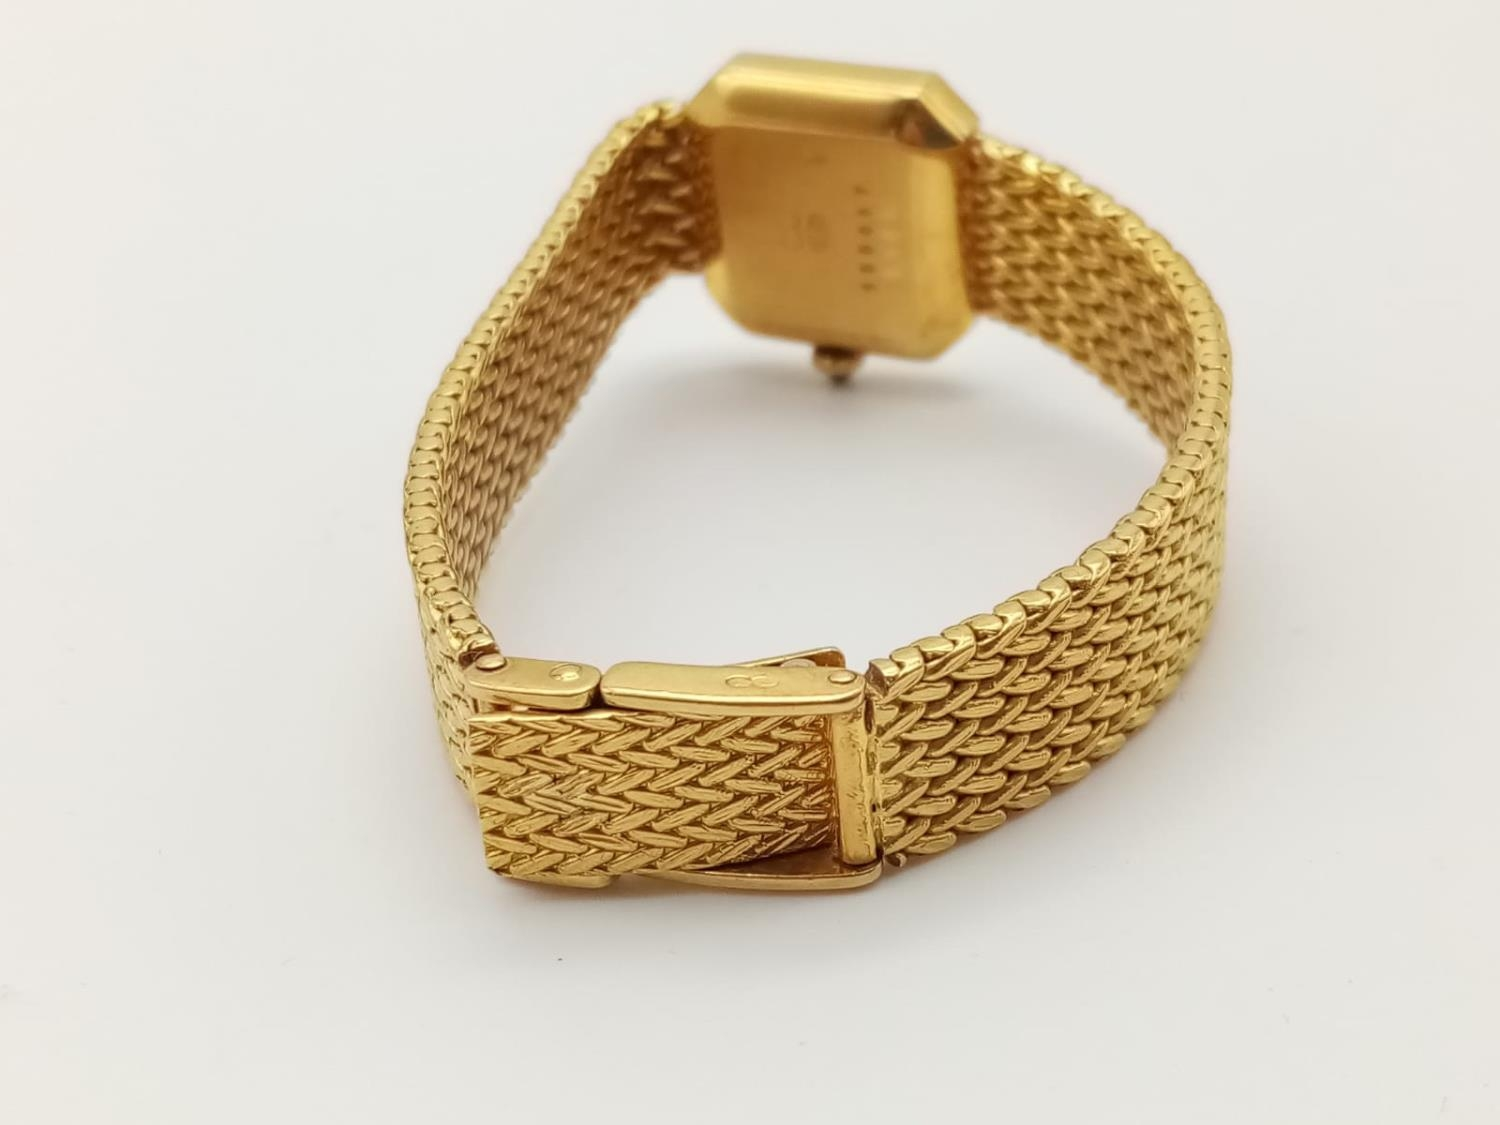 18K GOLD DRESS WATCH BY CHOPARD OF GENEVA WITH DIAMOND BEZEL AND SOLID GOLD STRAP. 20MM - Image 5 of 9